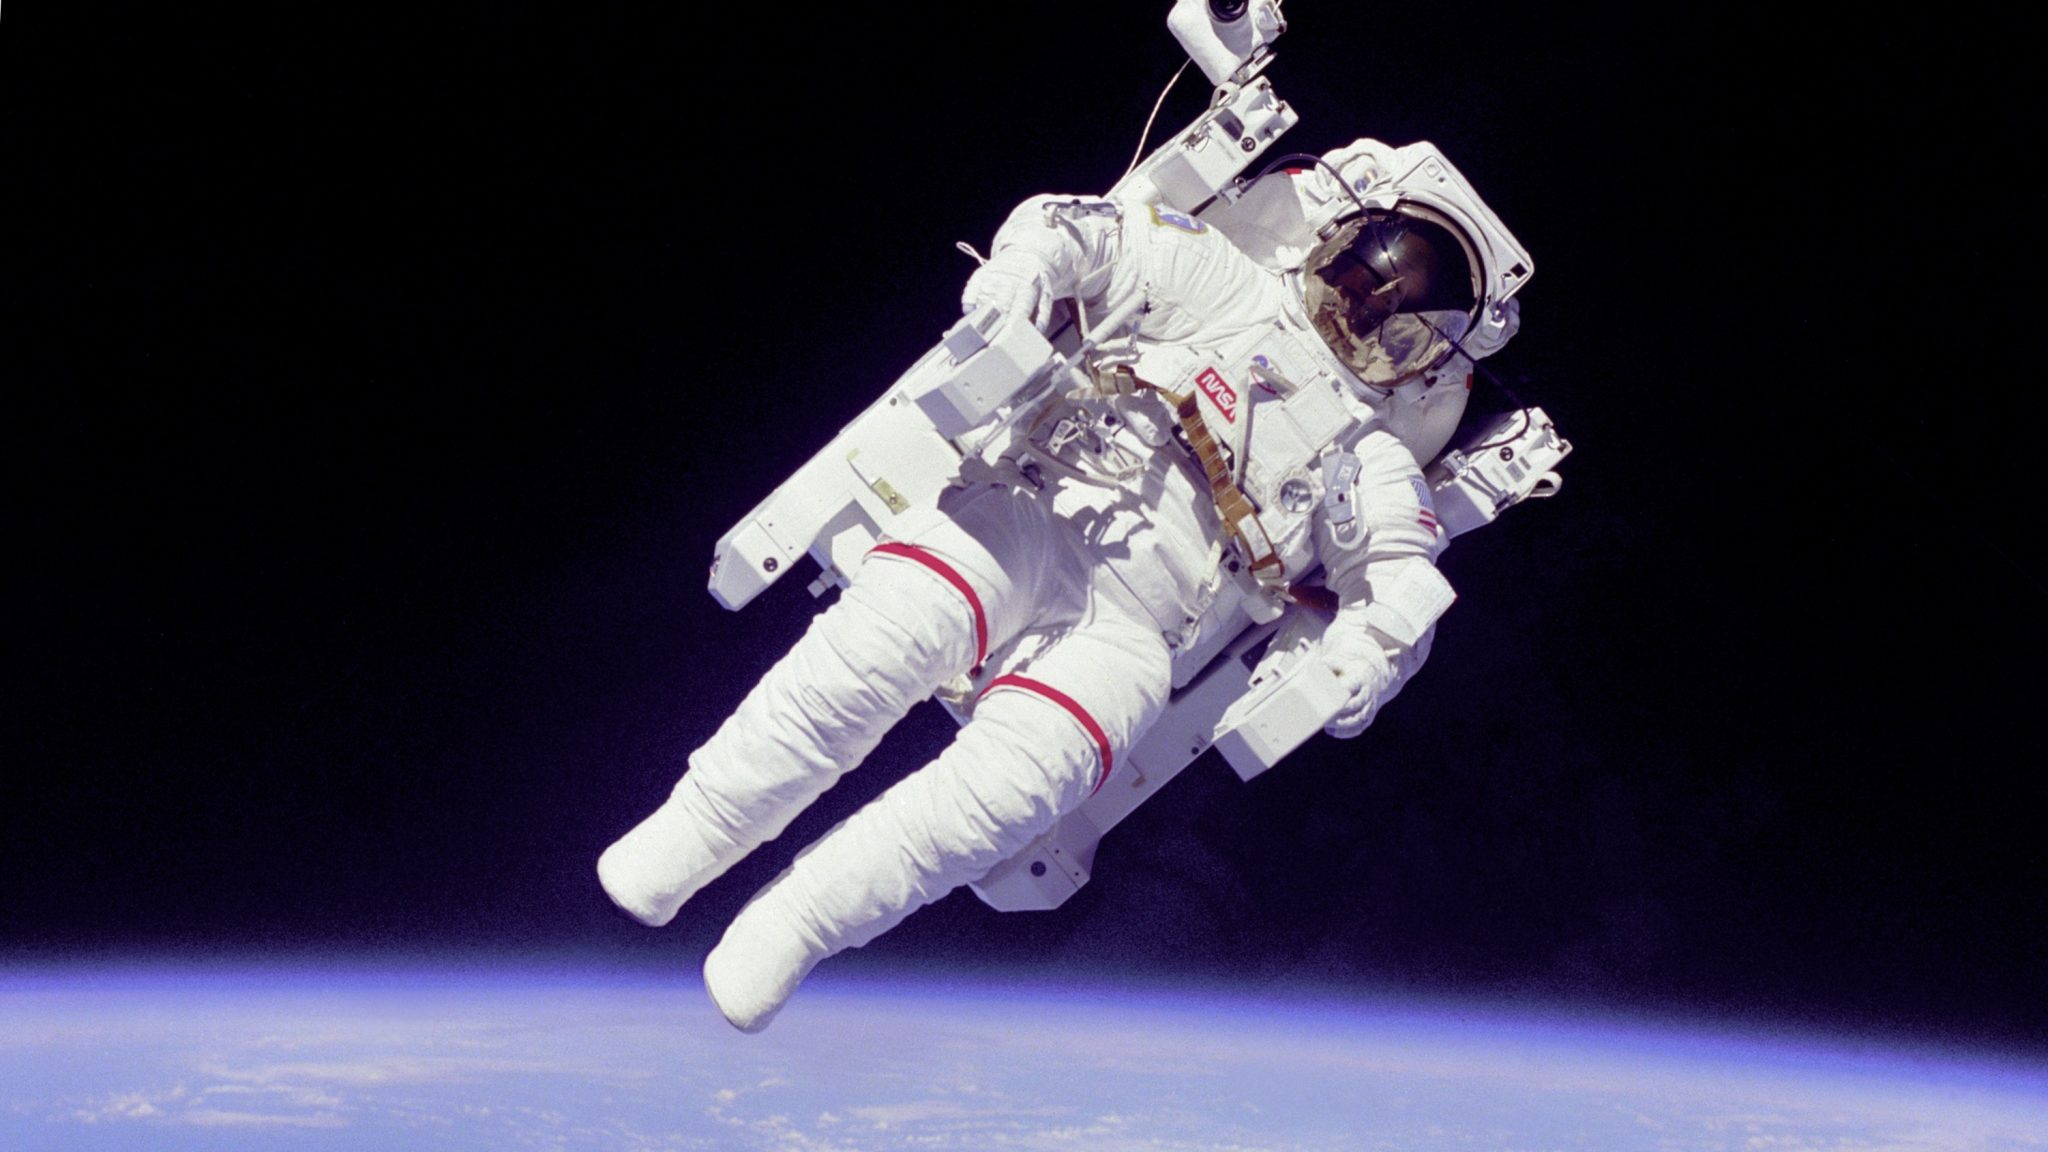 Astronataut Floating all alone in Space